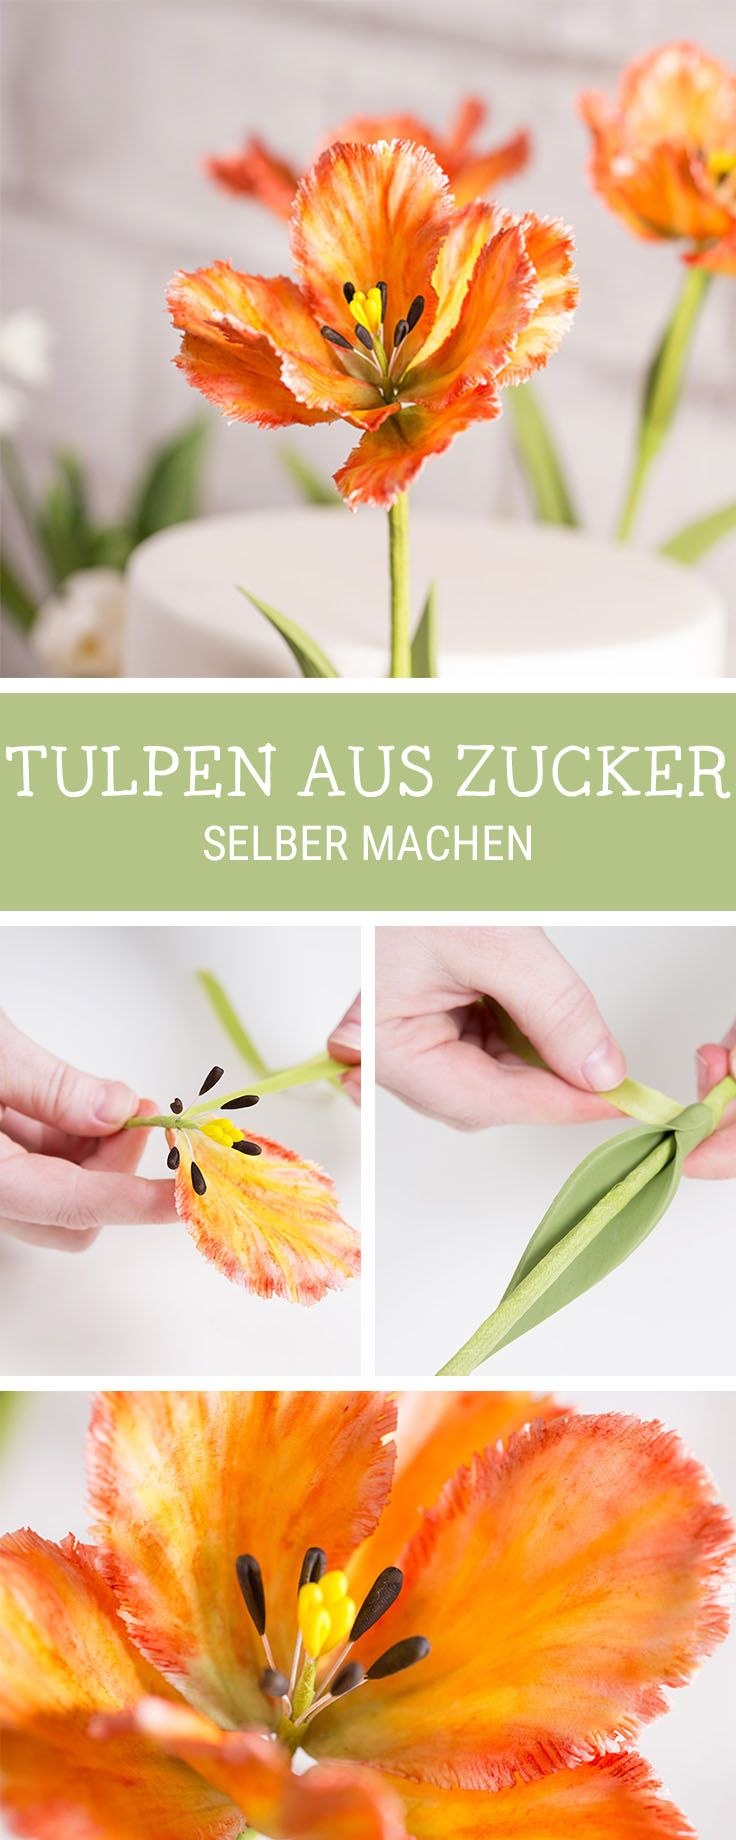 diy anleitung tulpen aus zucker f r eine fr hlingstorte modellieren via deine. Black Bedroom Furniture Sets. Home Design Ideas